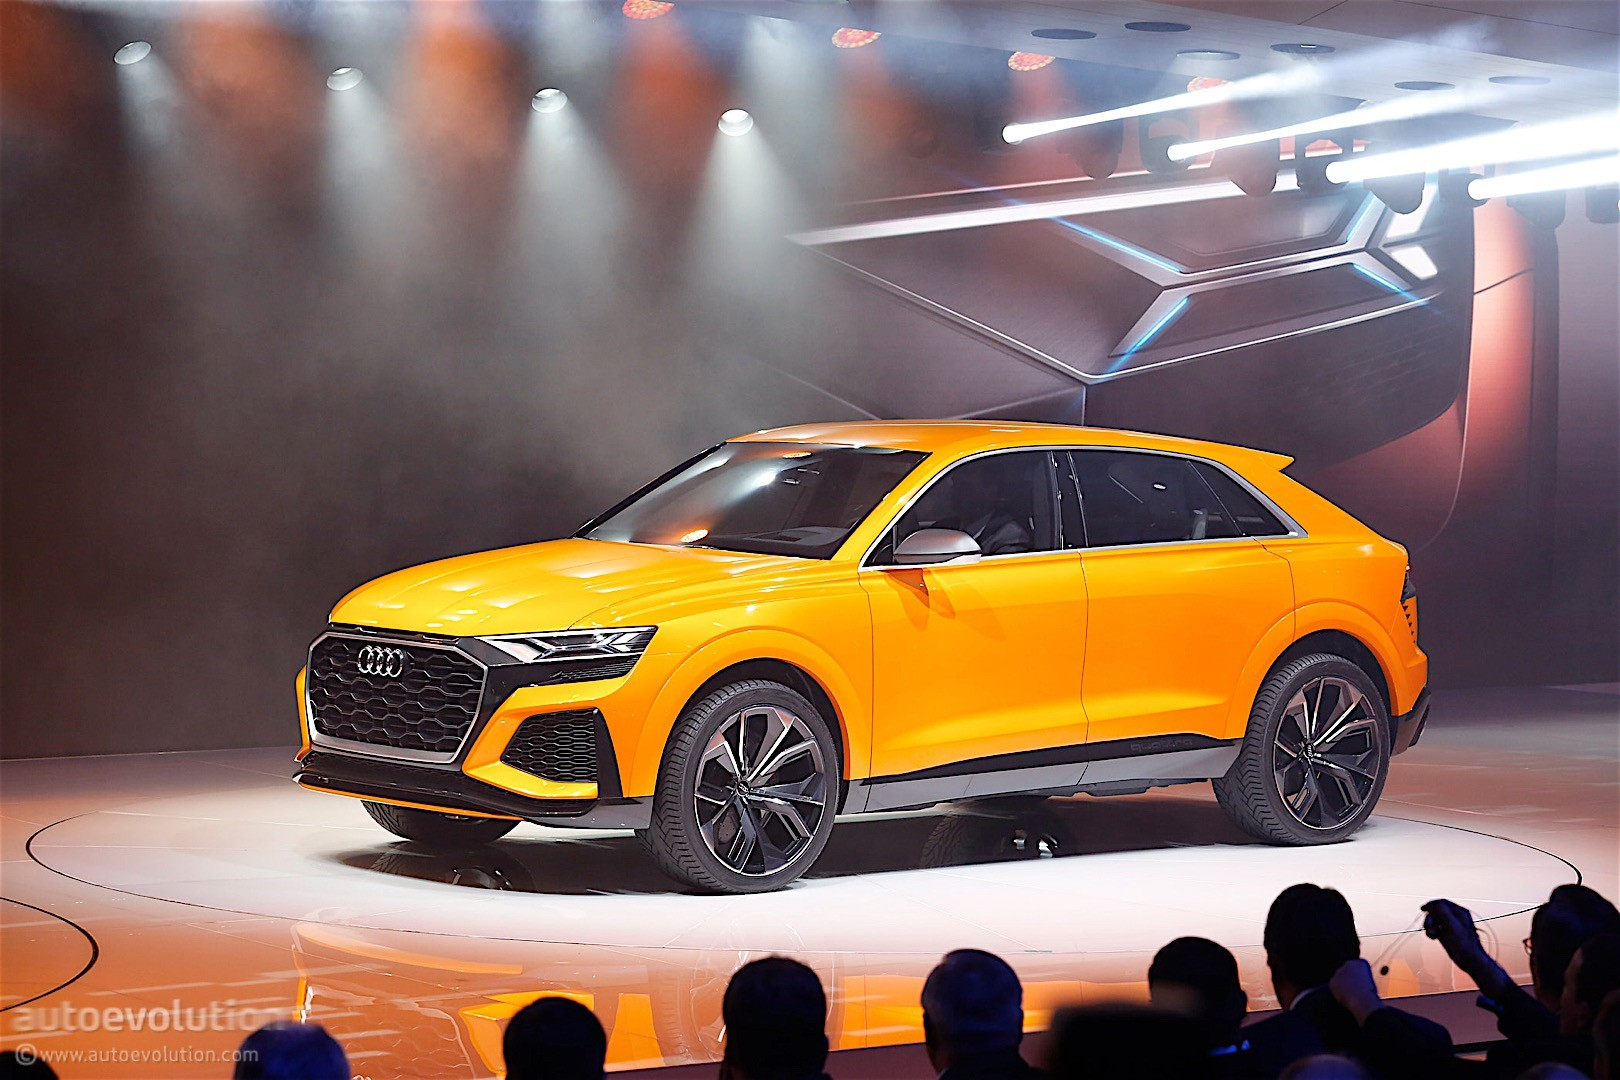 Audi Q8 Halo SUV Model Confirmed: Q7 Platform and Prologue Concept Design - autoevolution